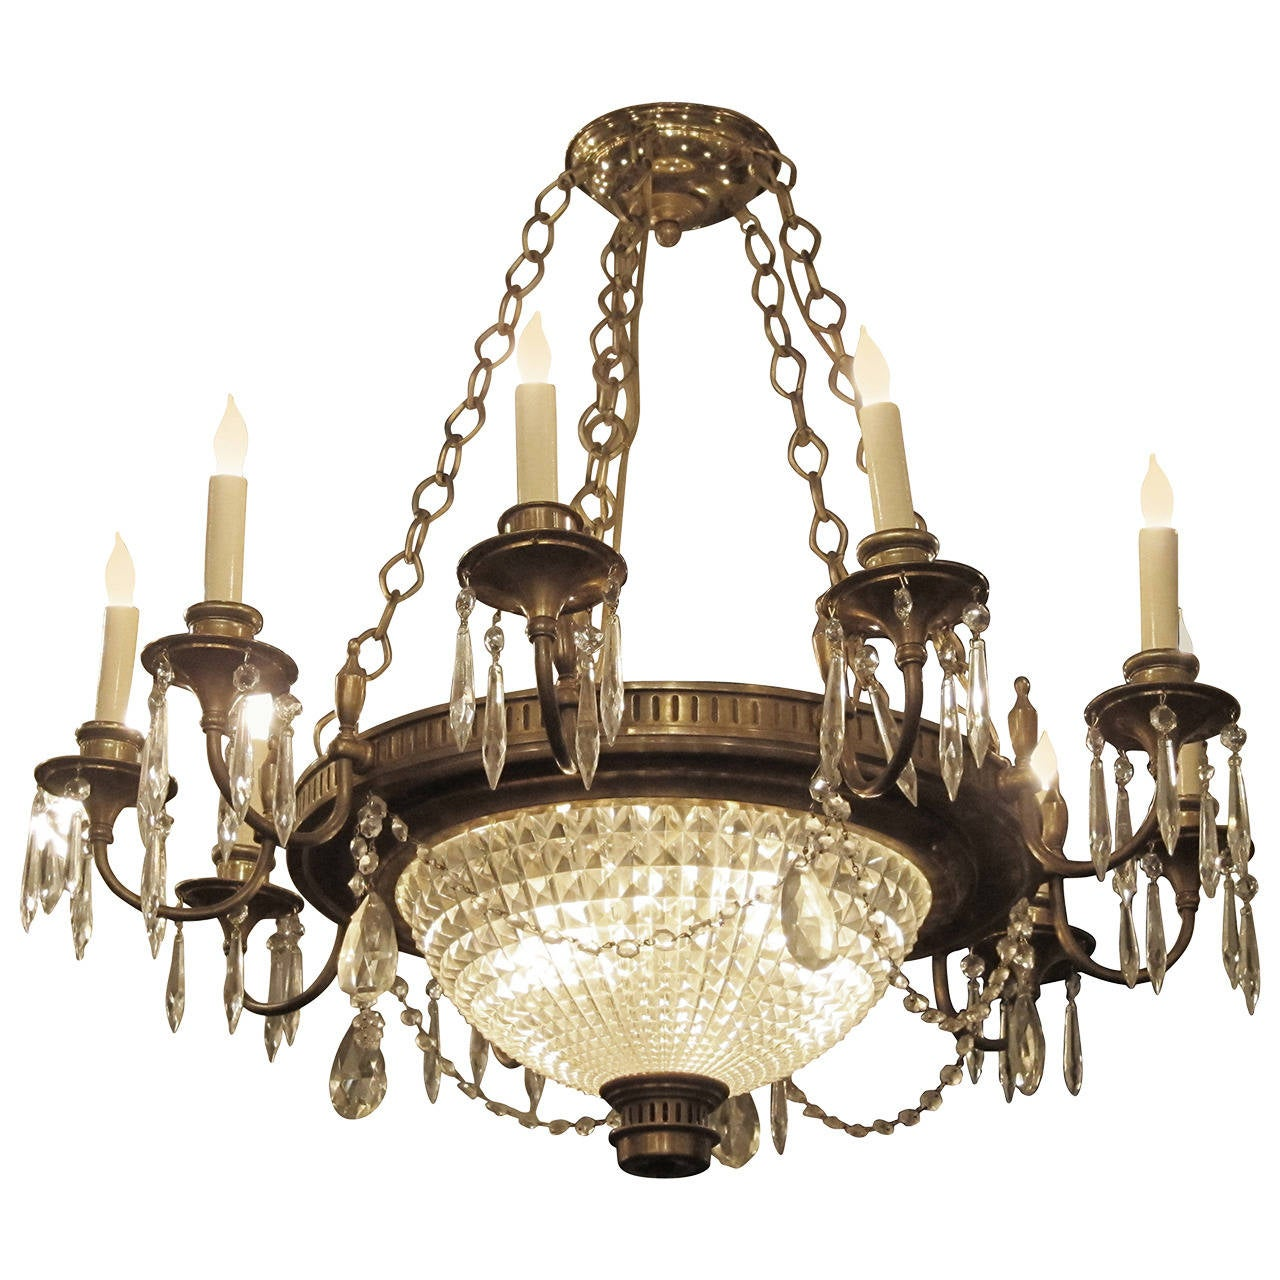 1920s French Empire Style Crystal and Bronze Twelve-Arm Chandelier